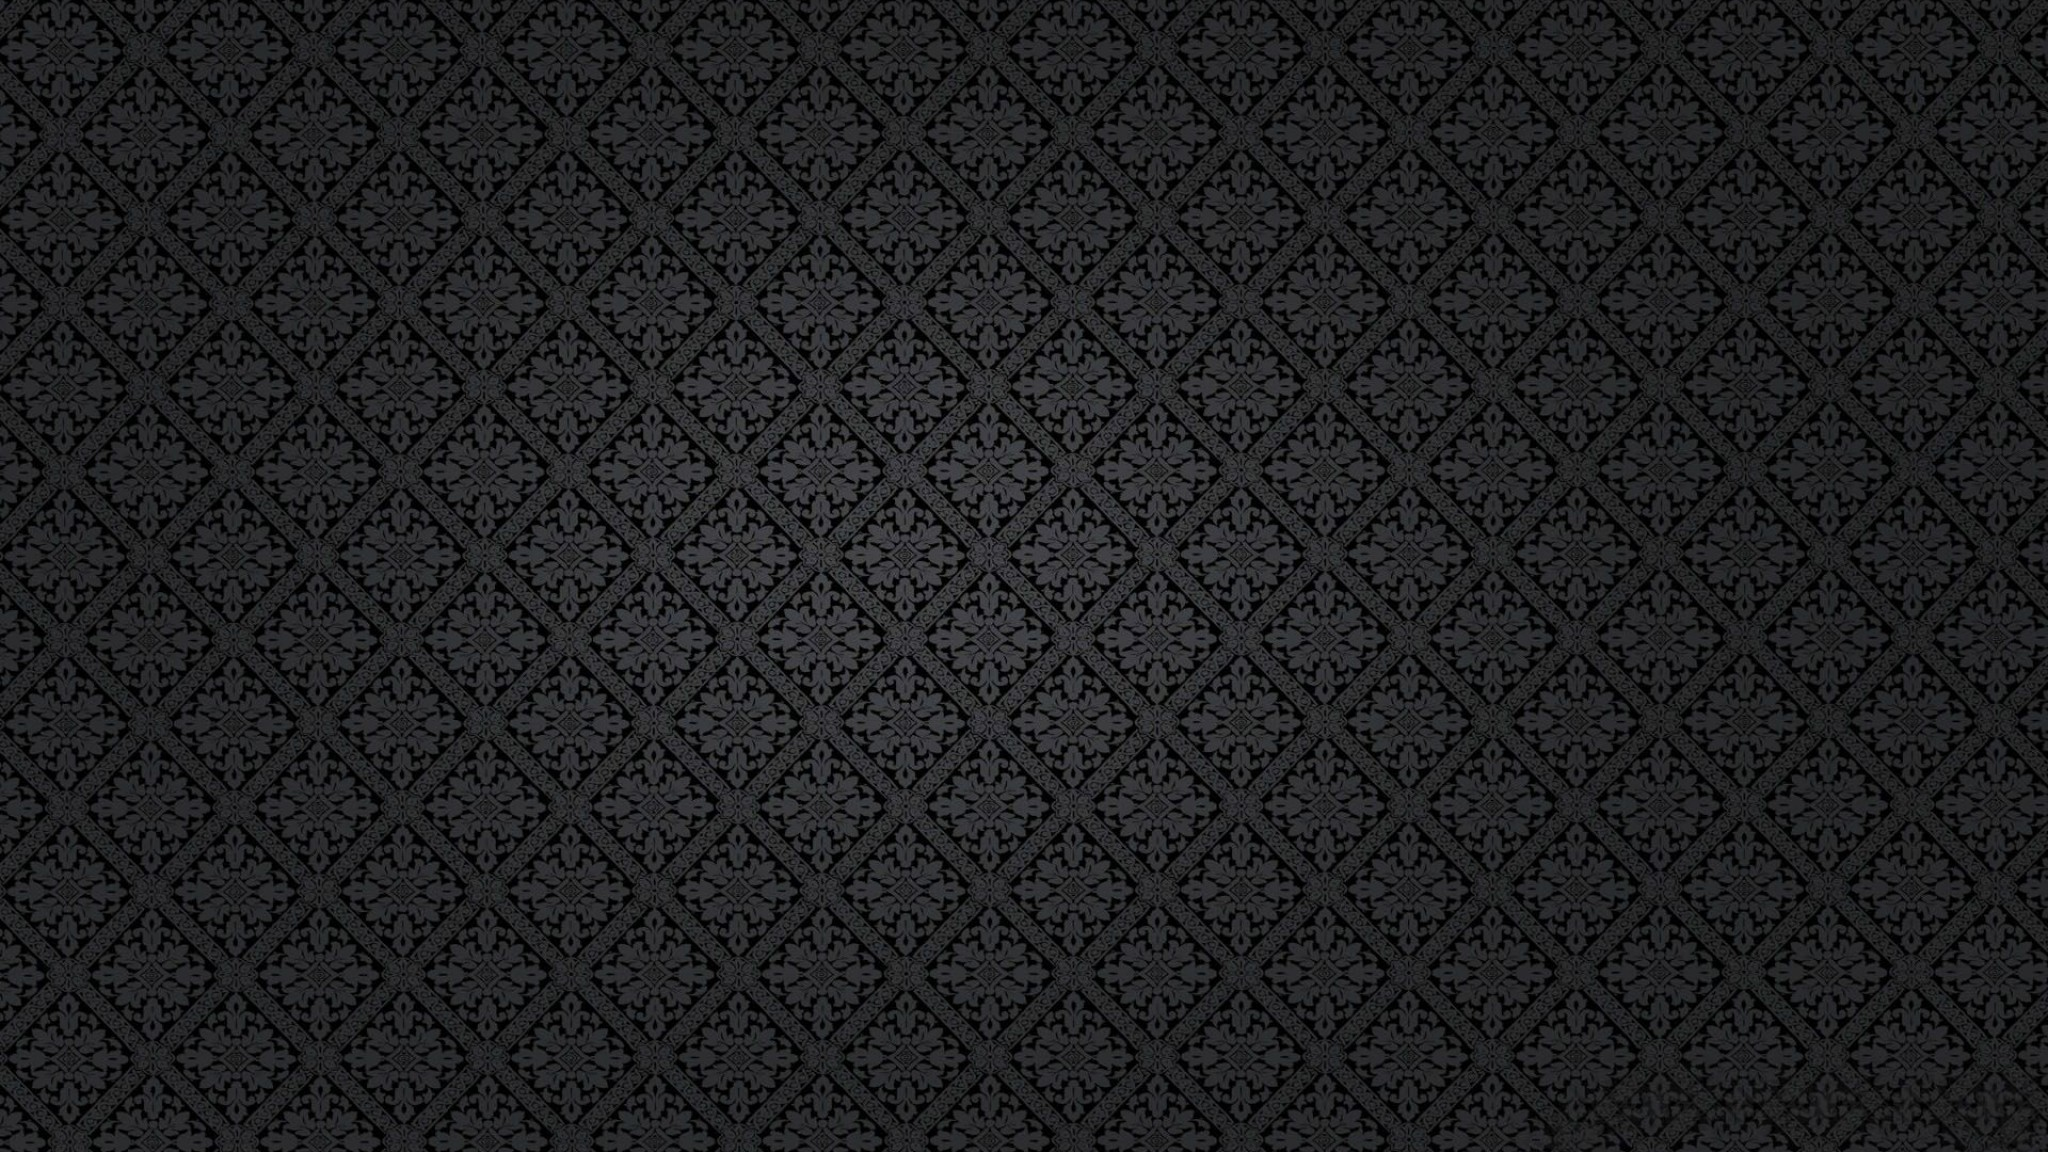 Black And White Pattern   us  HD Wallpaper